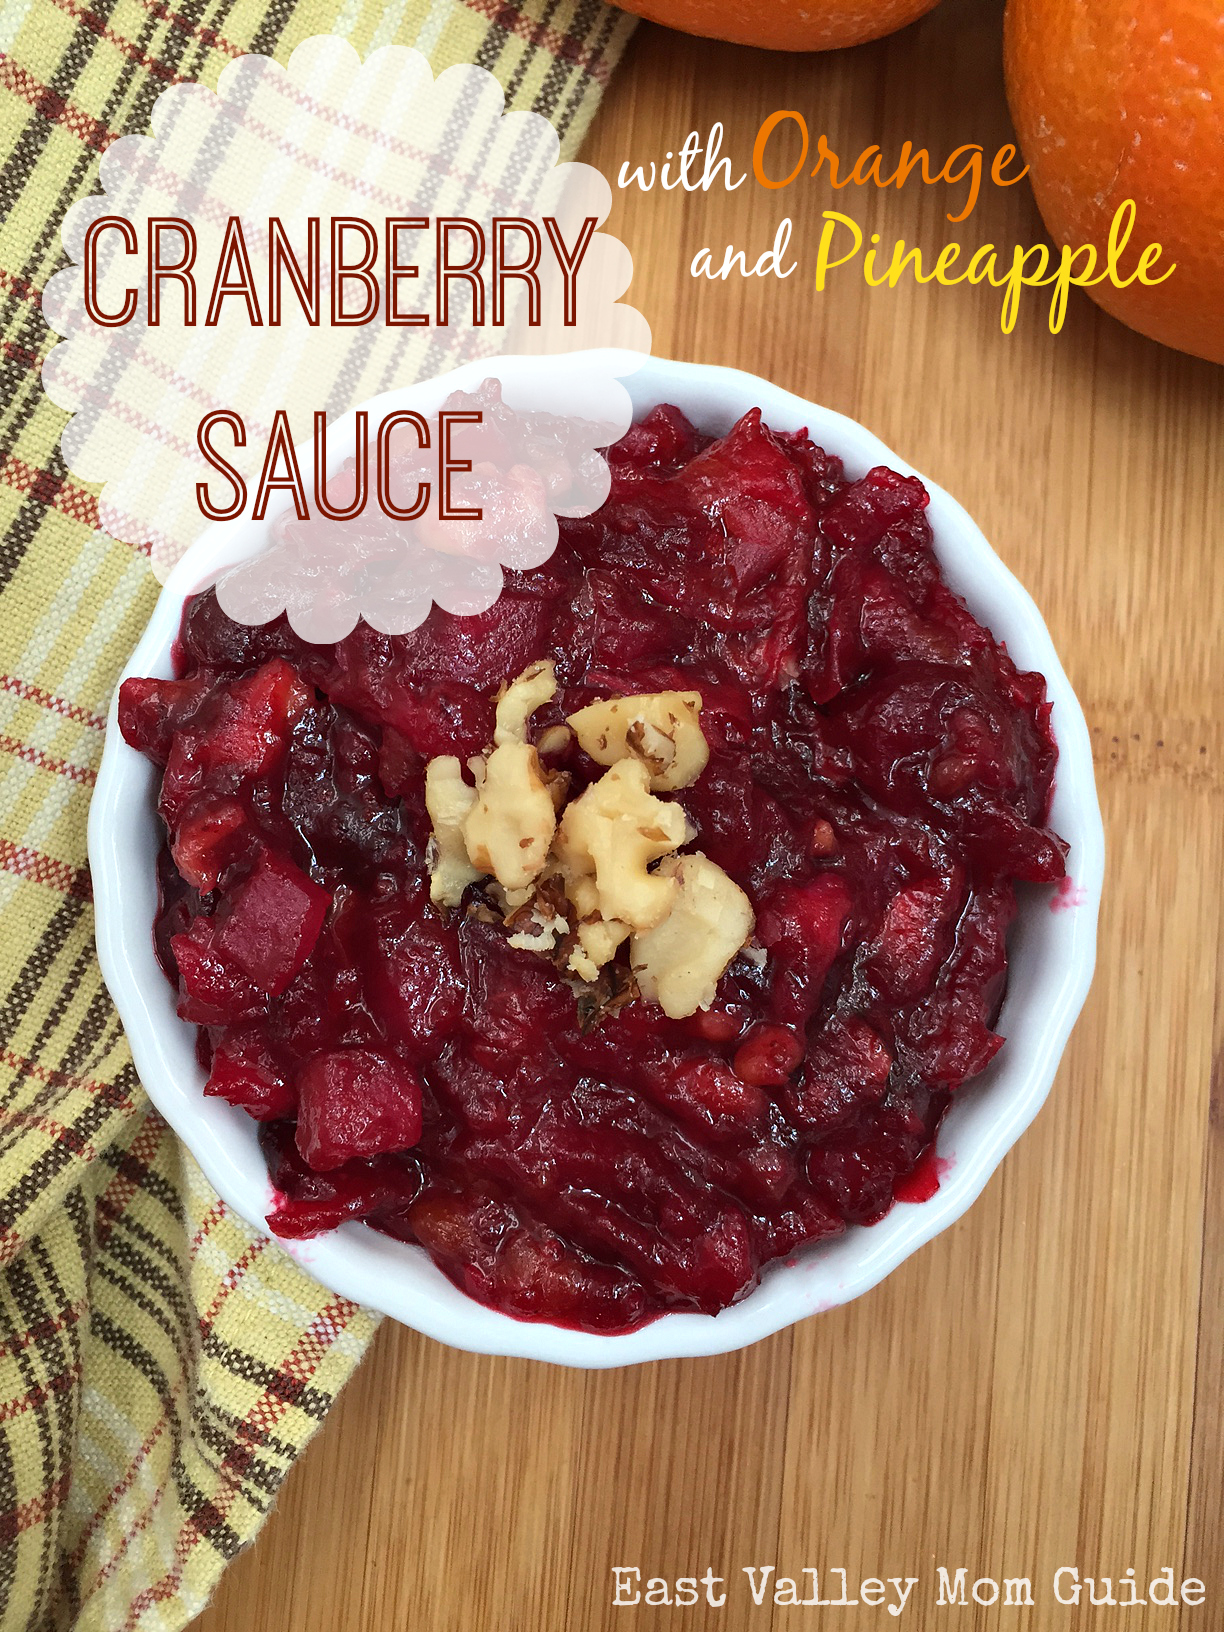 Cranberry Sauce with Orange and Pineapple - East Valley Mom Guide